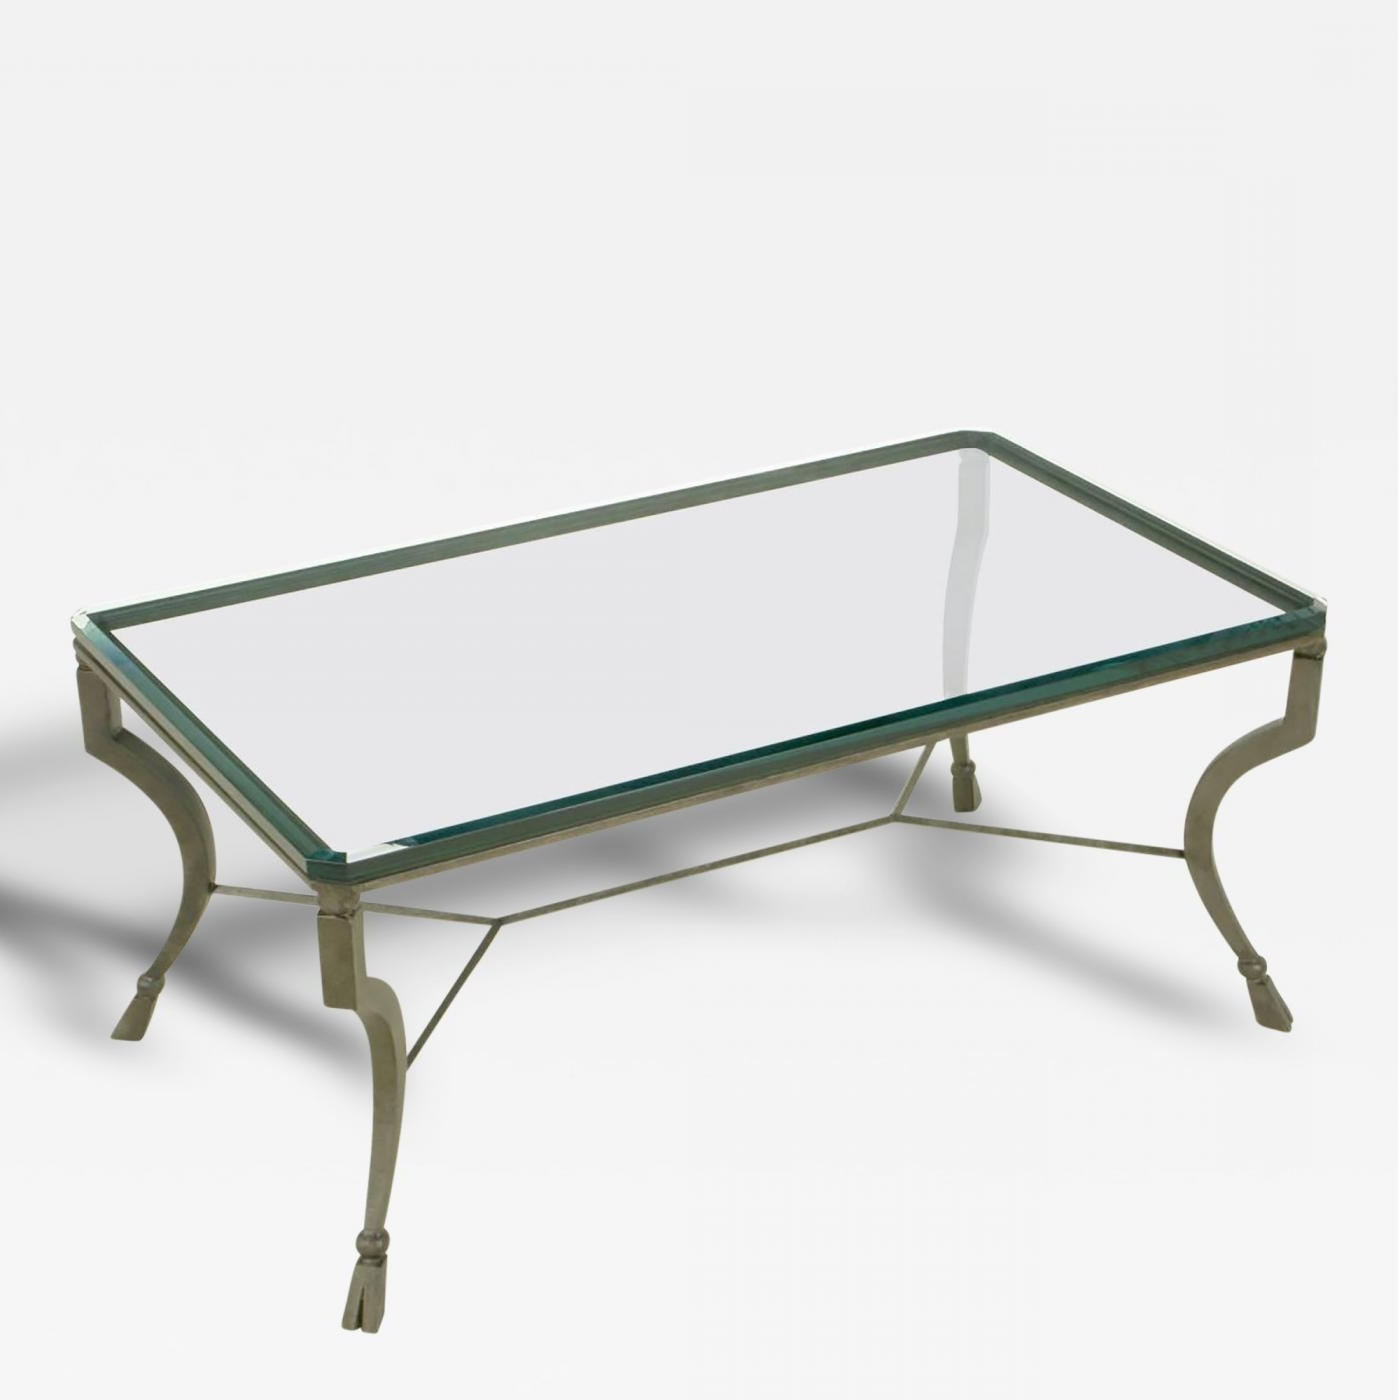 Hand Wrought Iron Stylized Hoof Foot Coffee Table In Gunmetal Grey Throughout 2017 Gunmetal Coffee Tables (View 11 of 20)